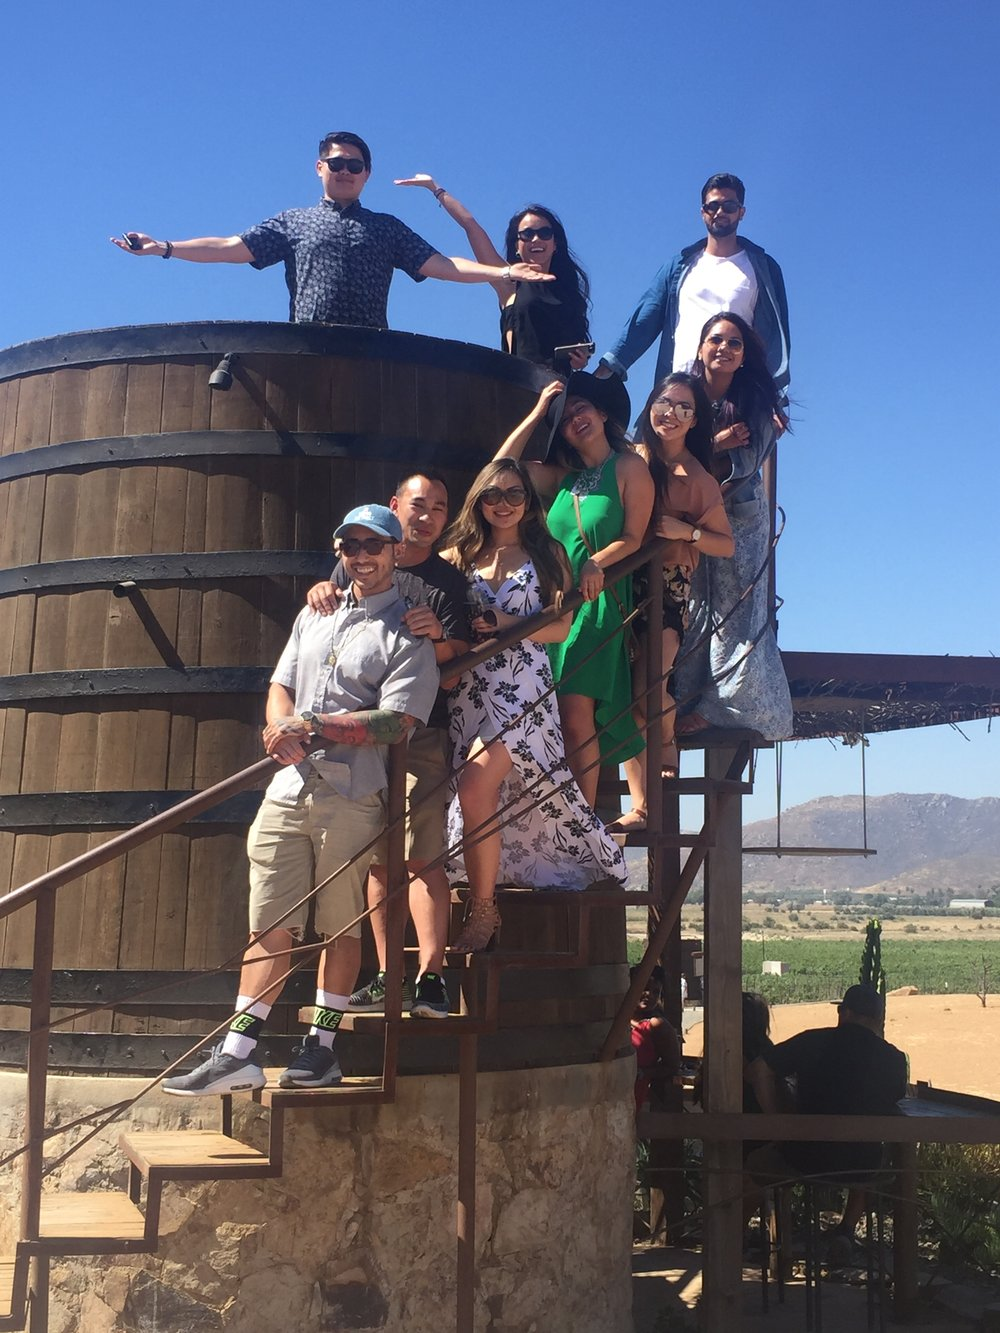 Our tour guests on our Valle de Guadalupe wine tour!